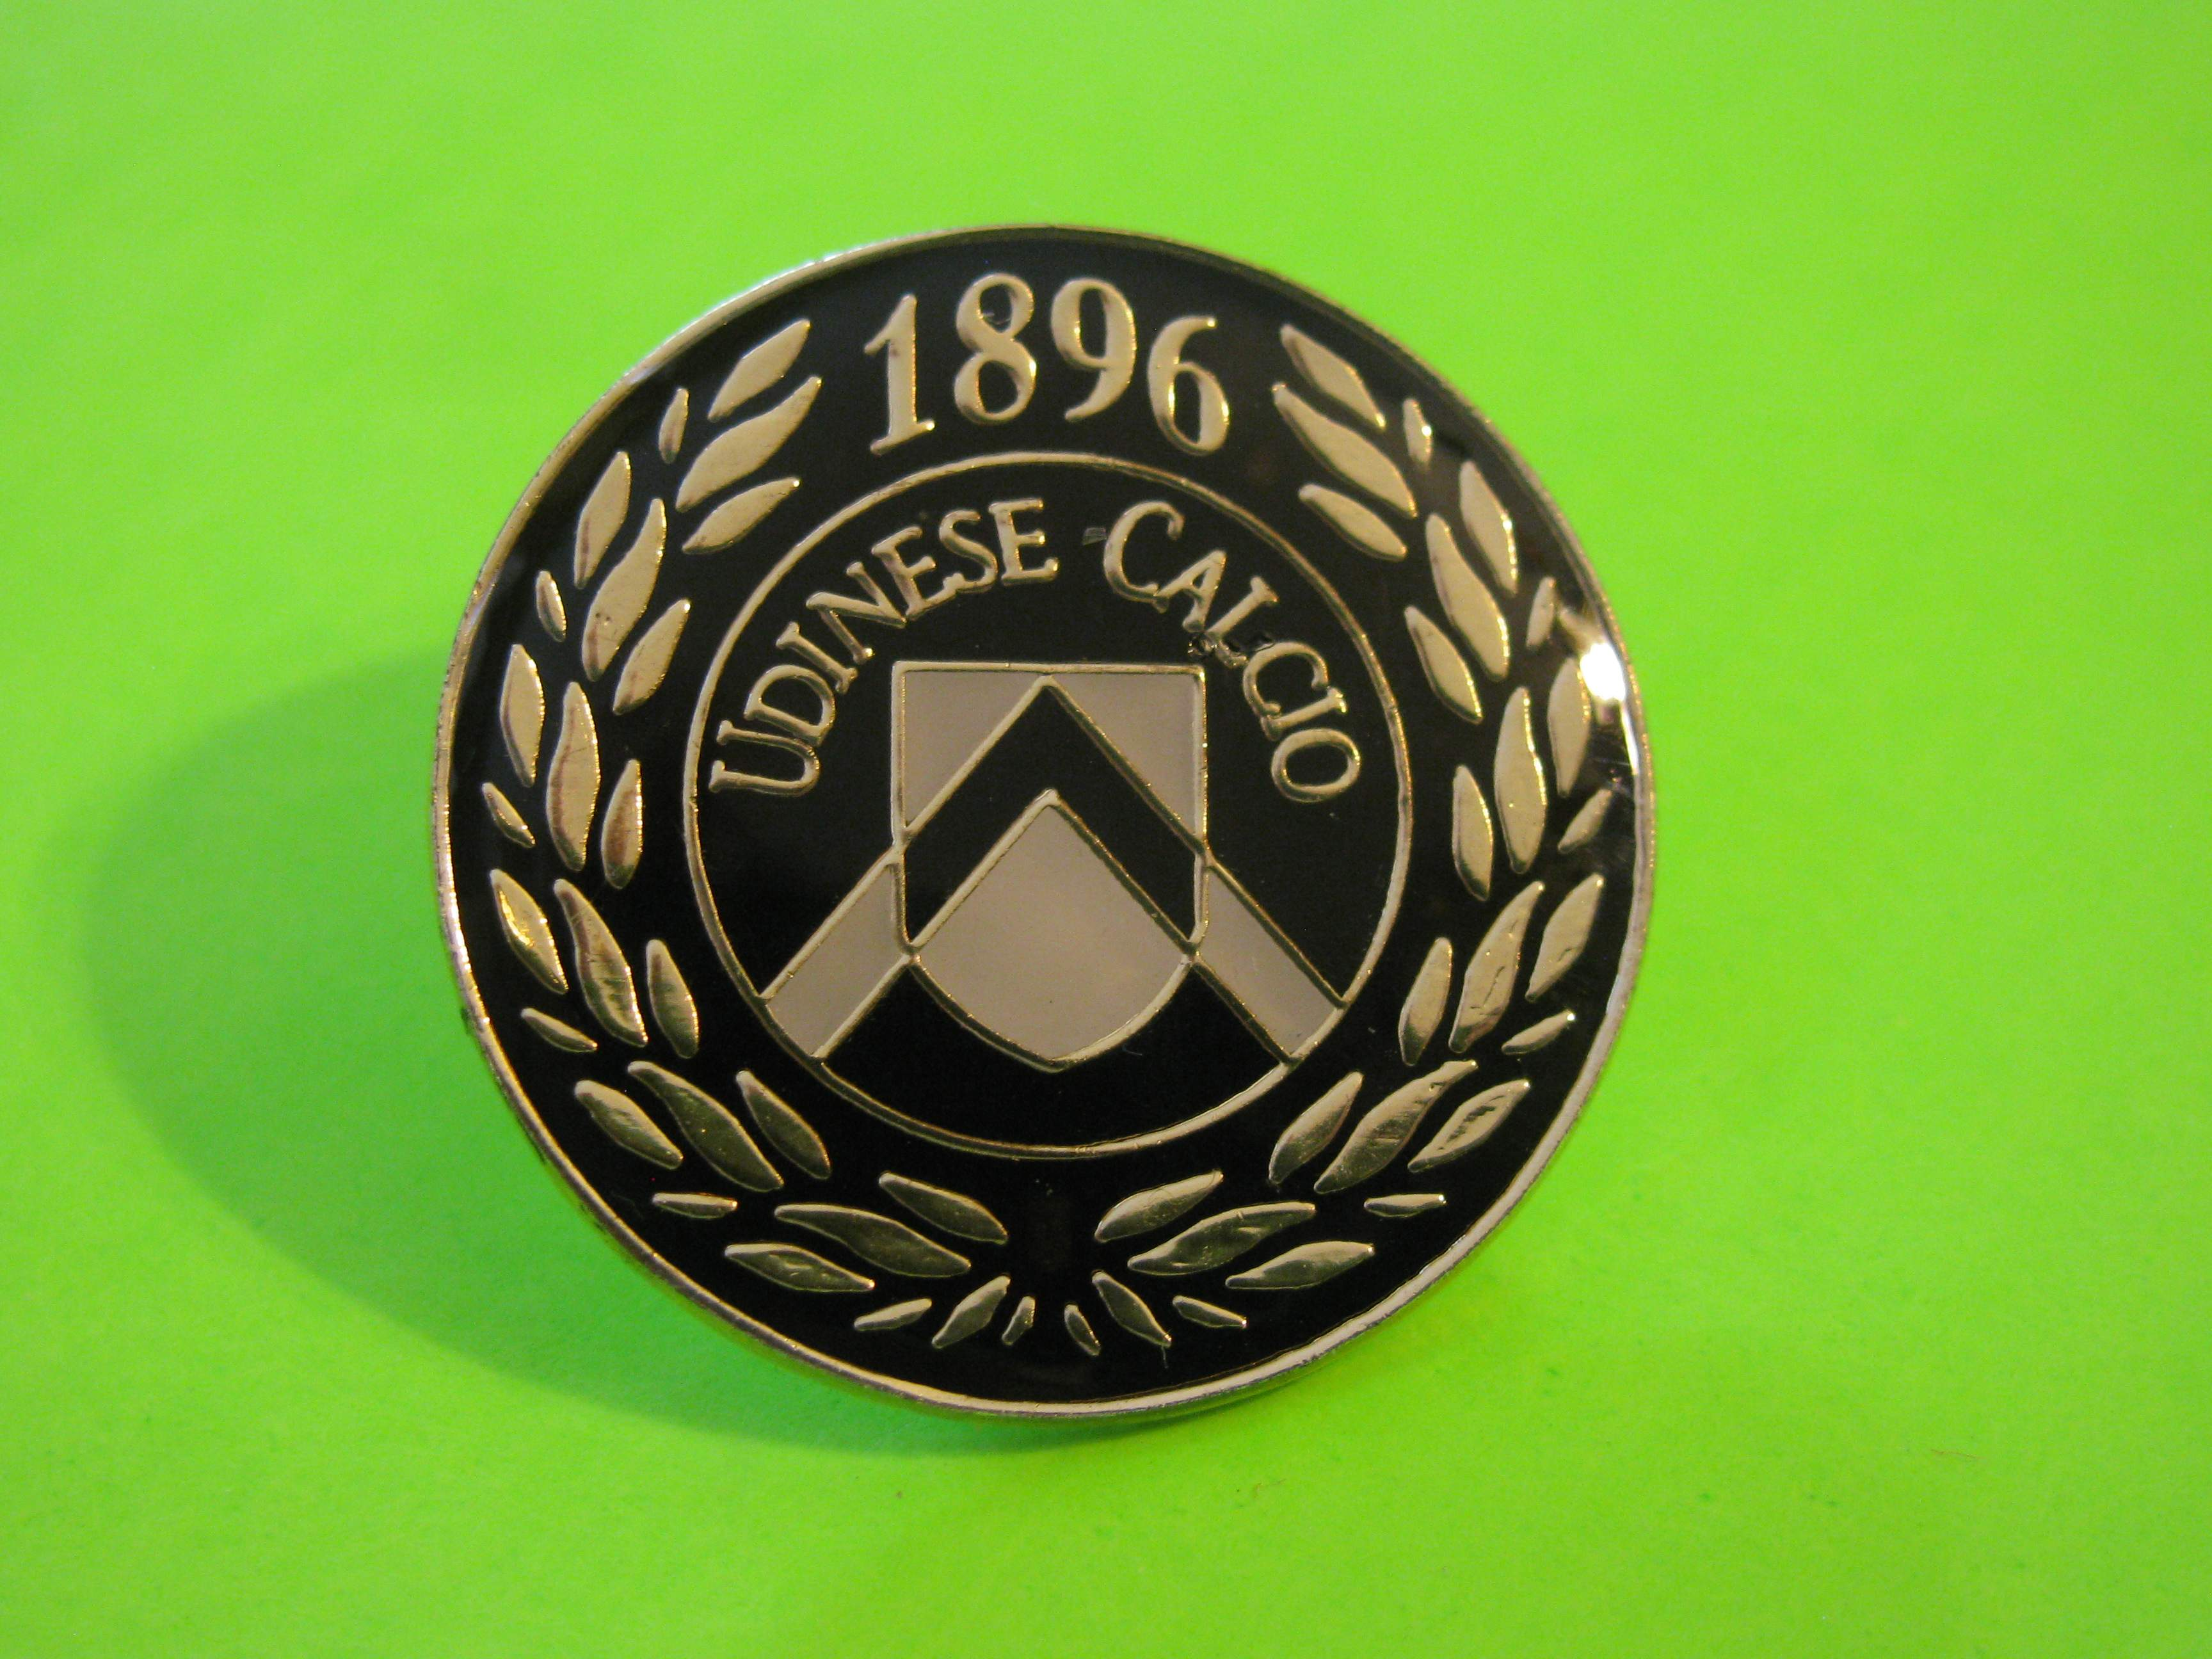 UDINESE CALCIO 1896 Vintage Metal Pin with Butterfly Clutch